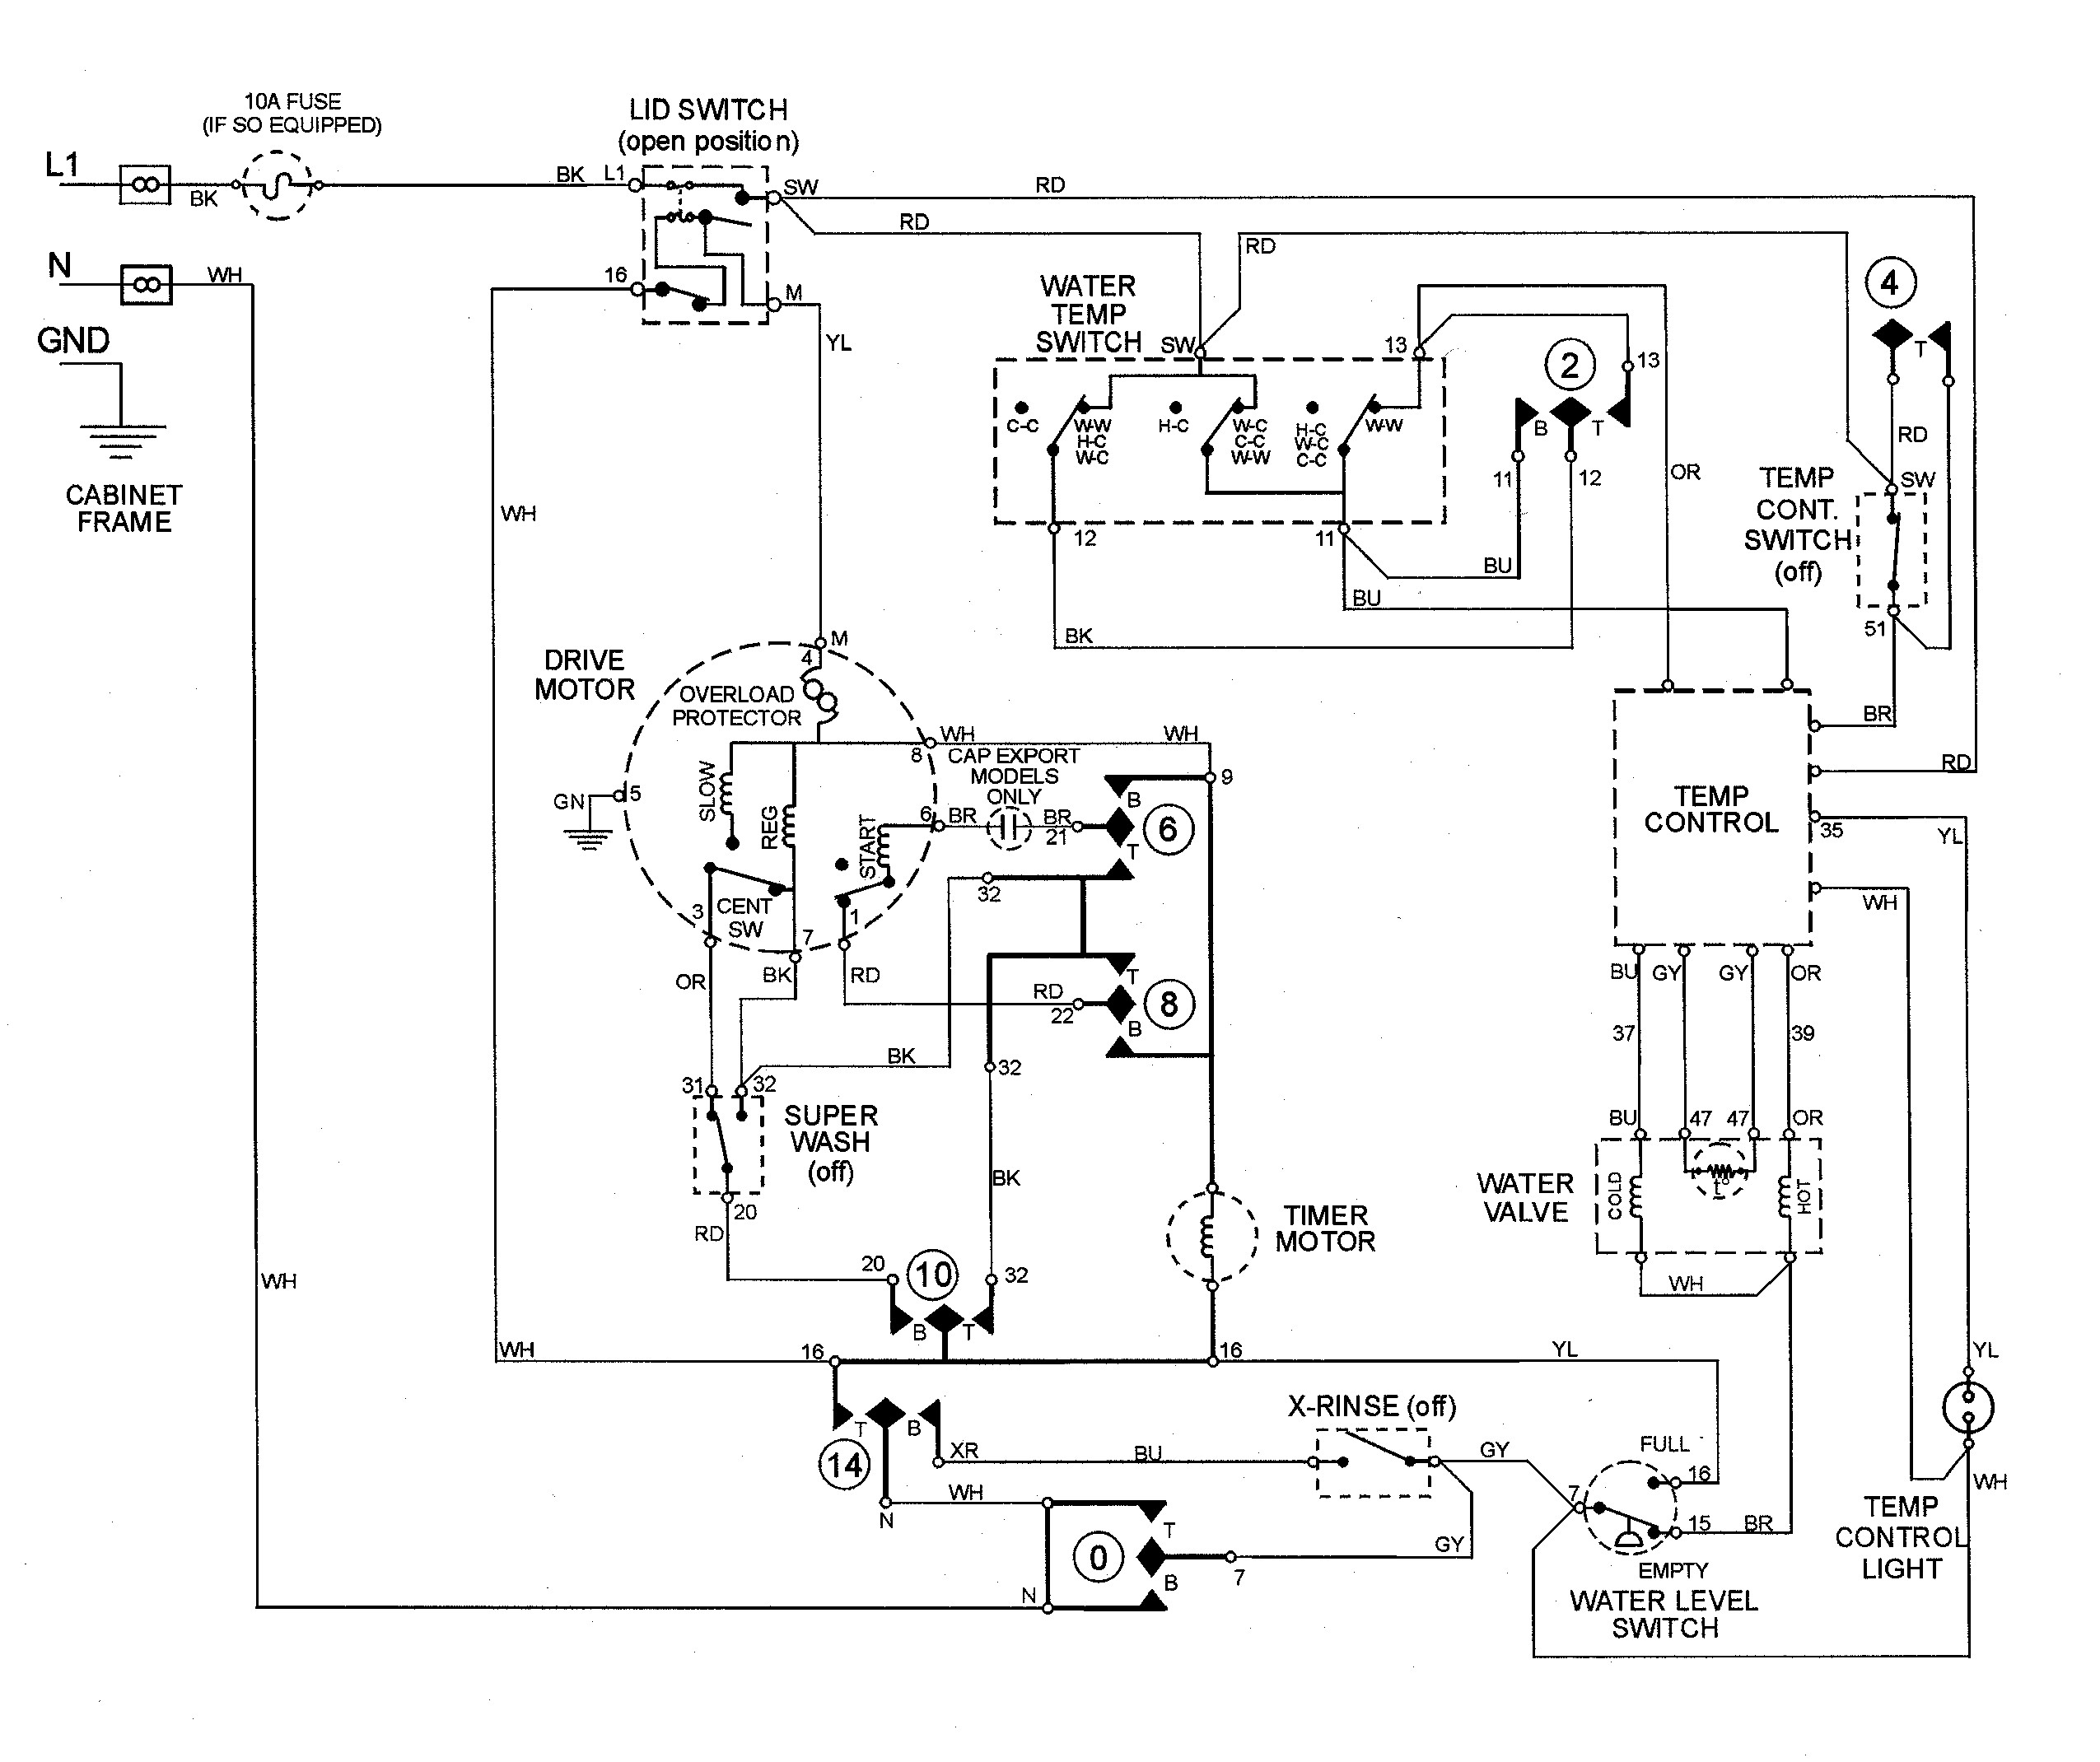 Speedqueen Washing Machine Wiring Diagrams